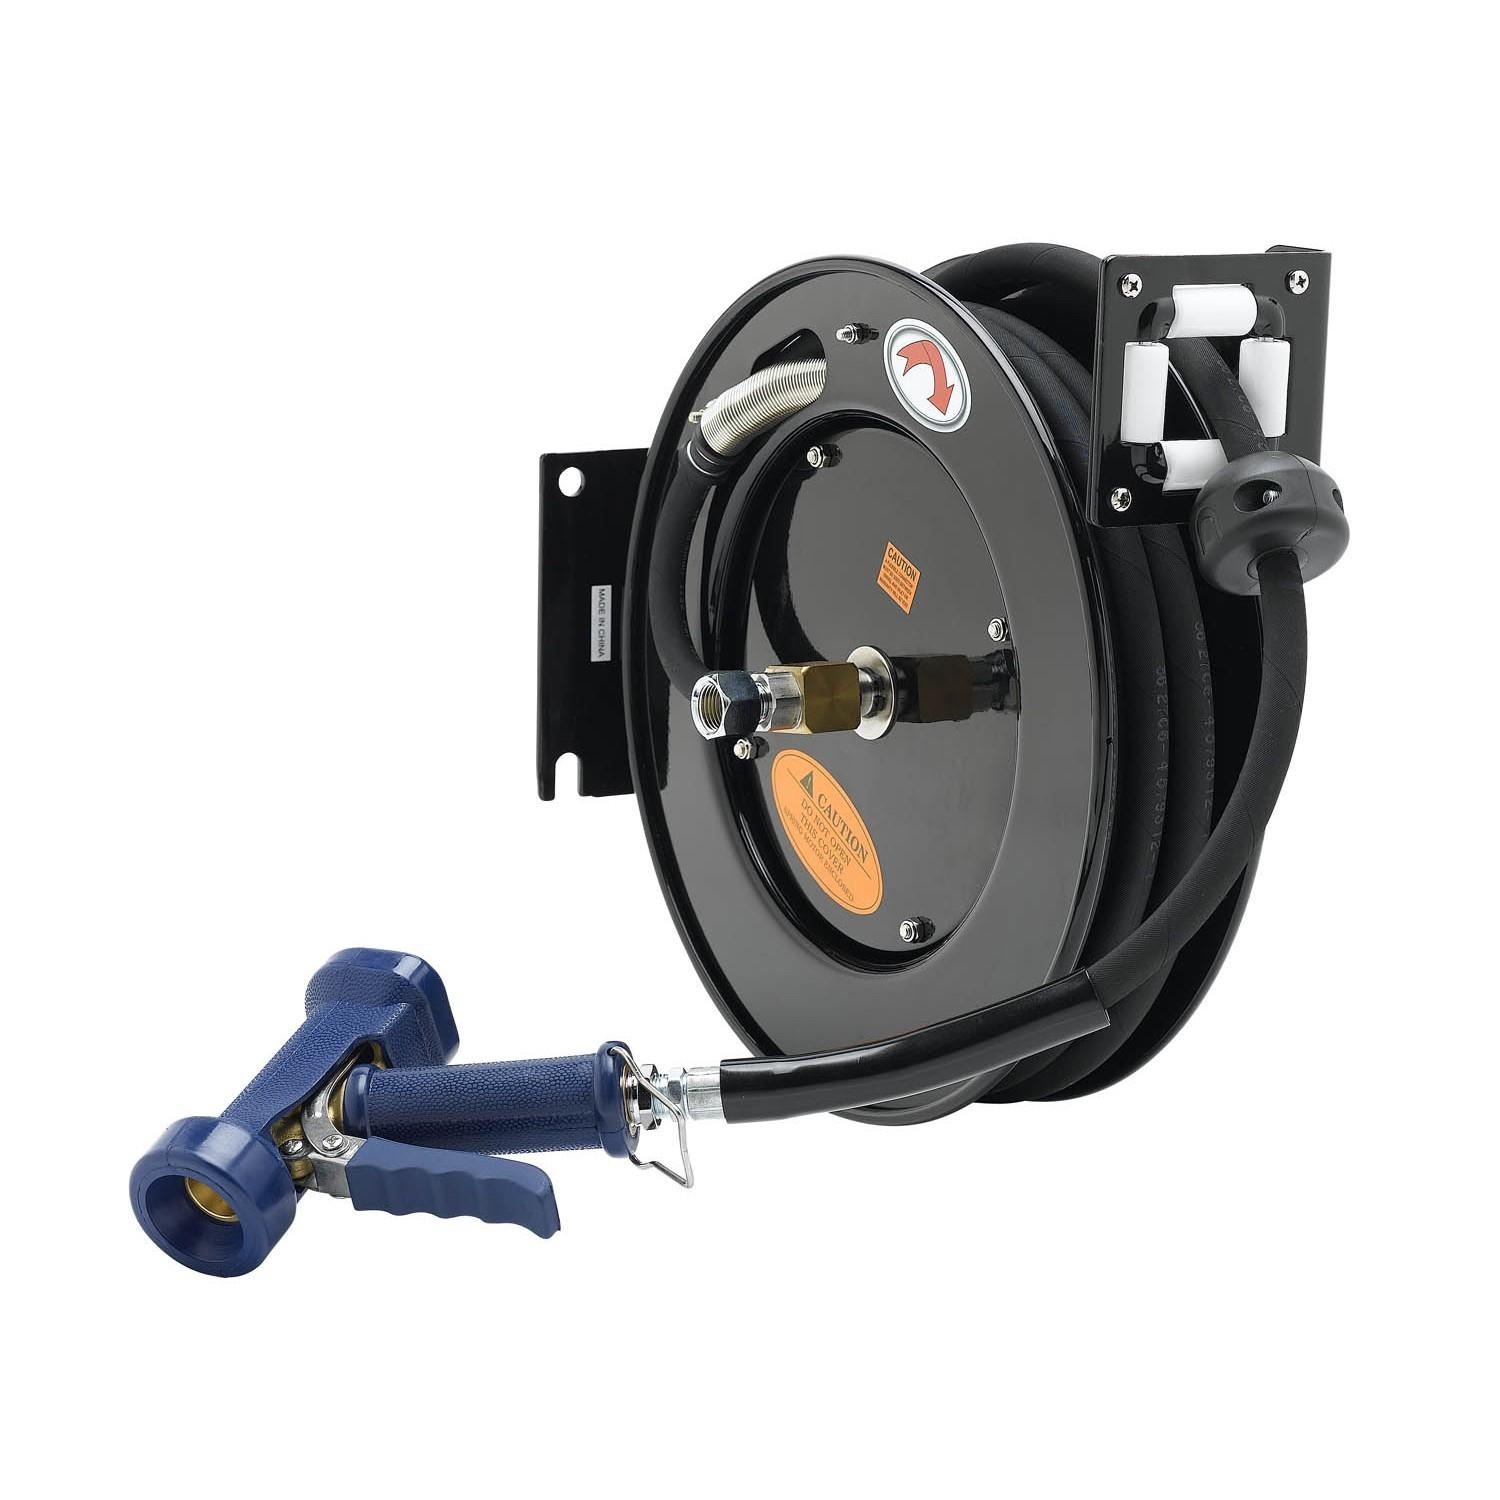 "T&S BRASS HOSE REEL, OPEN, POWDER COATED STEEL, 3/8"" X 50^ ID HOSE, FRONT TRIGGER WATER GUN, ADAPTER"